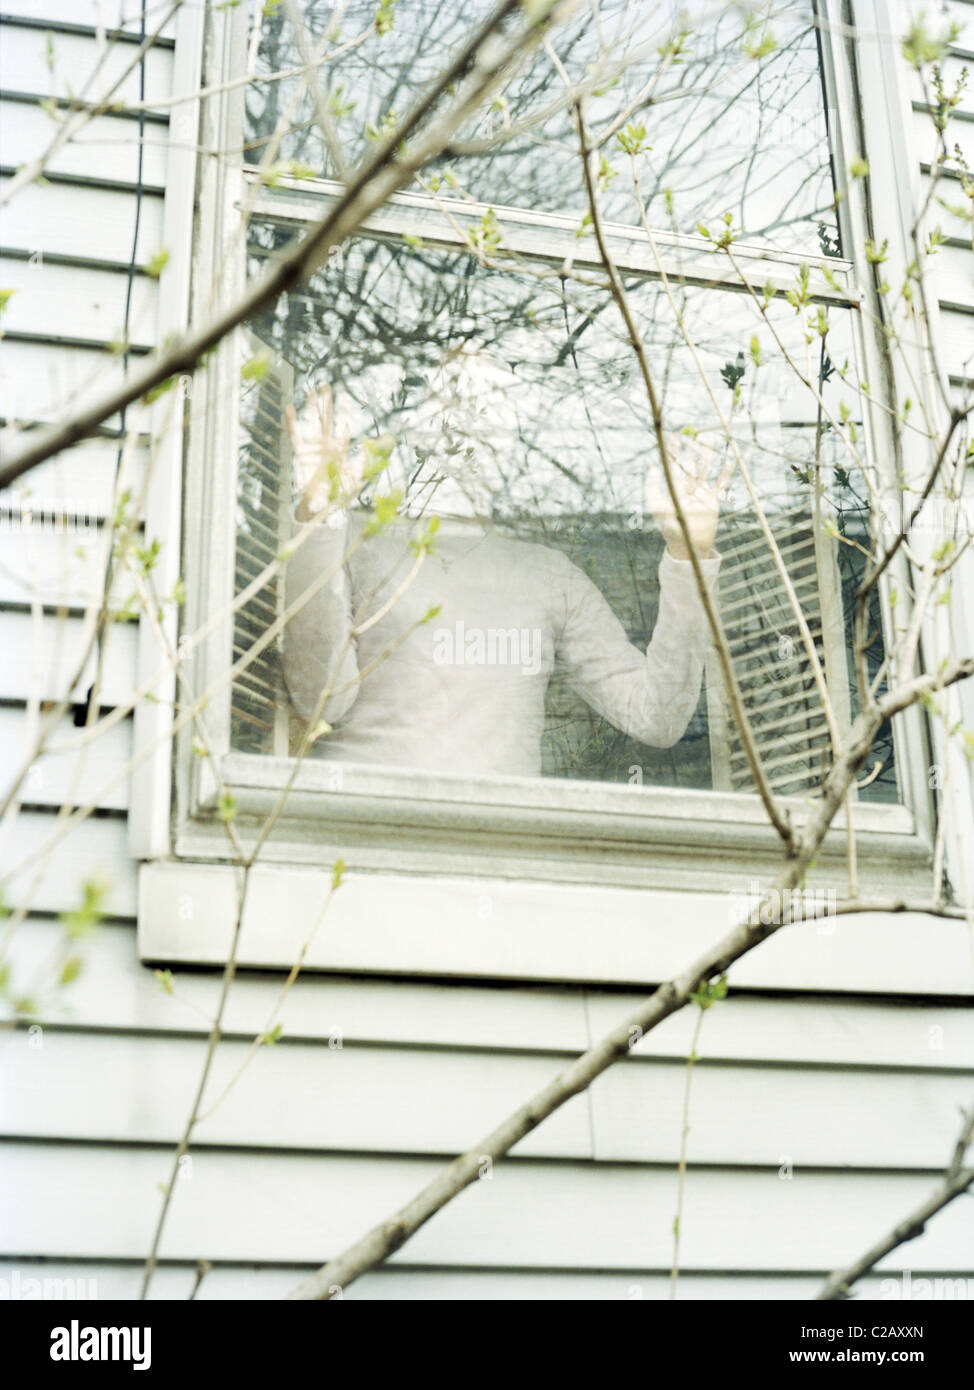 Person looking out window - Stock Image